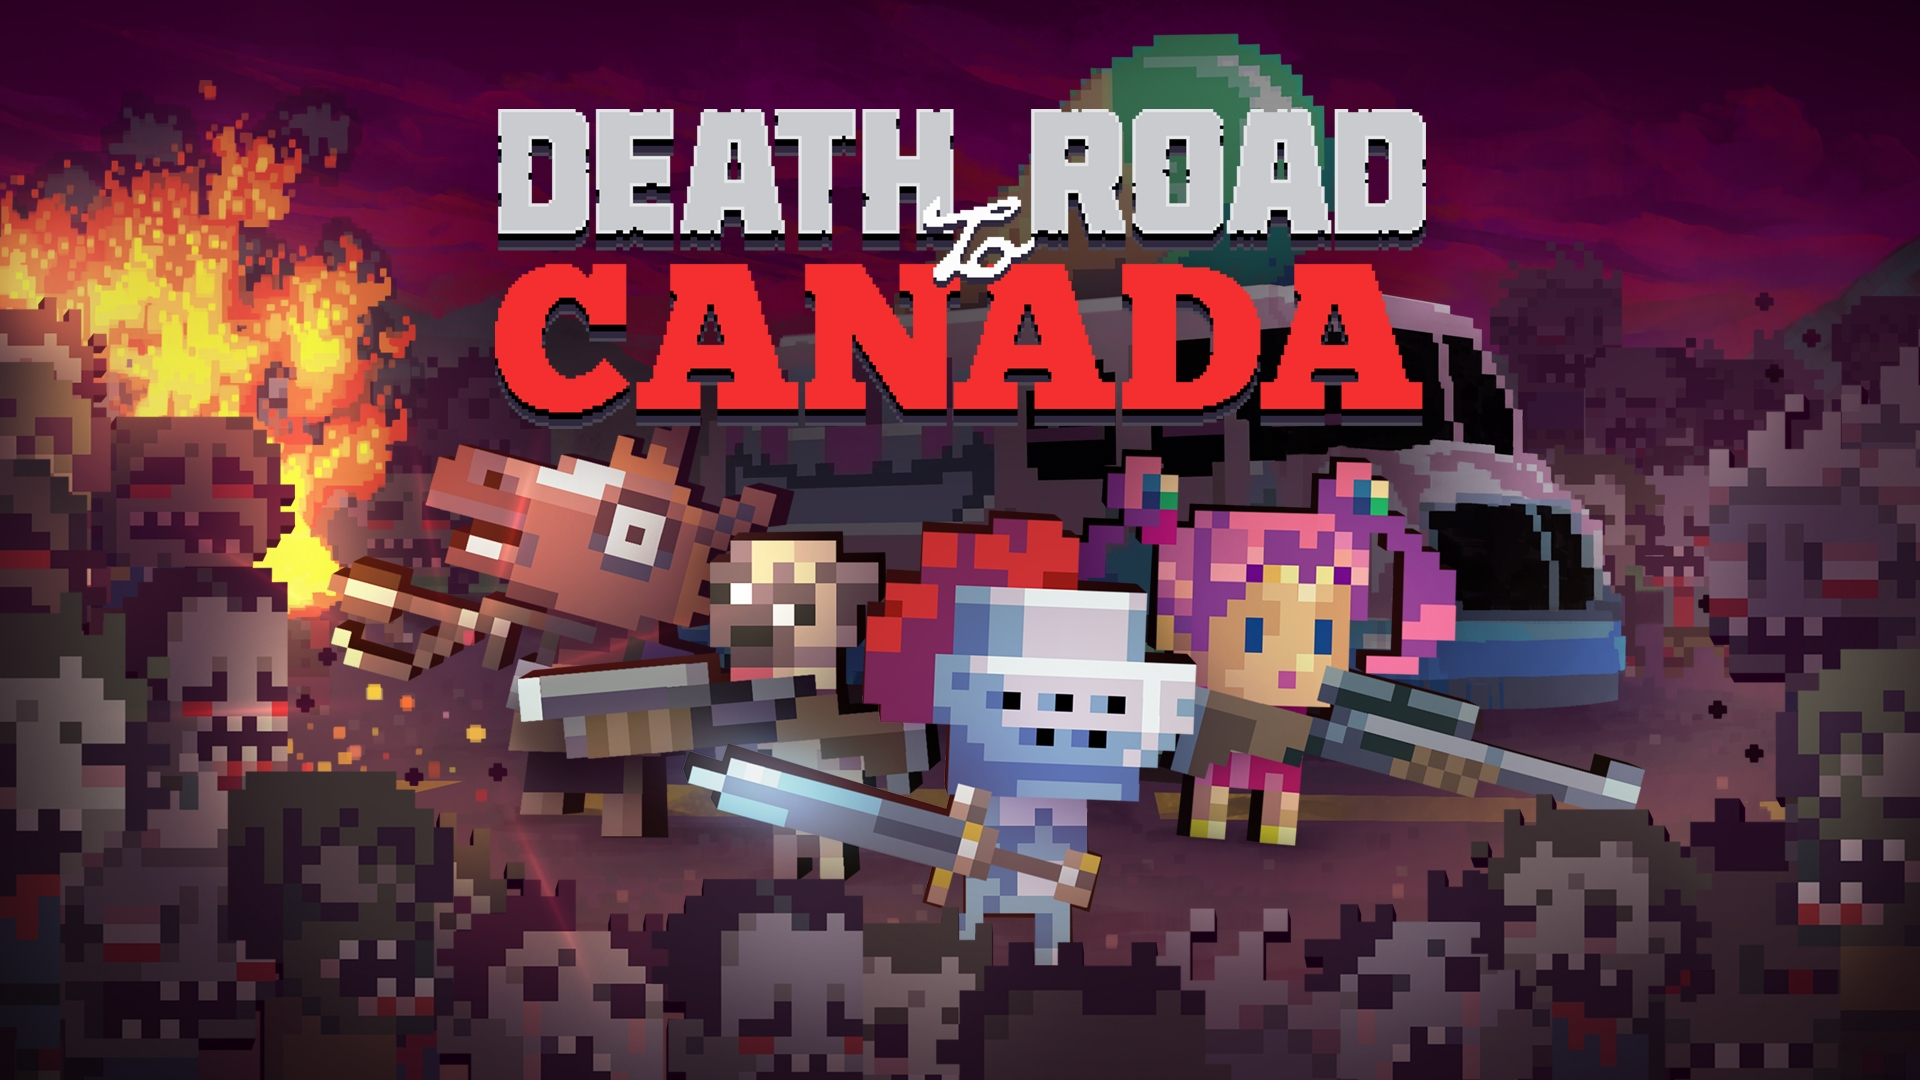 Death Road to Canada Kidney Update Now Available On iOS